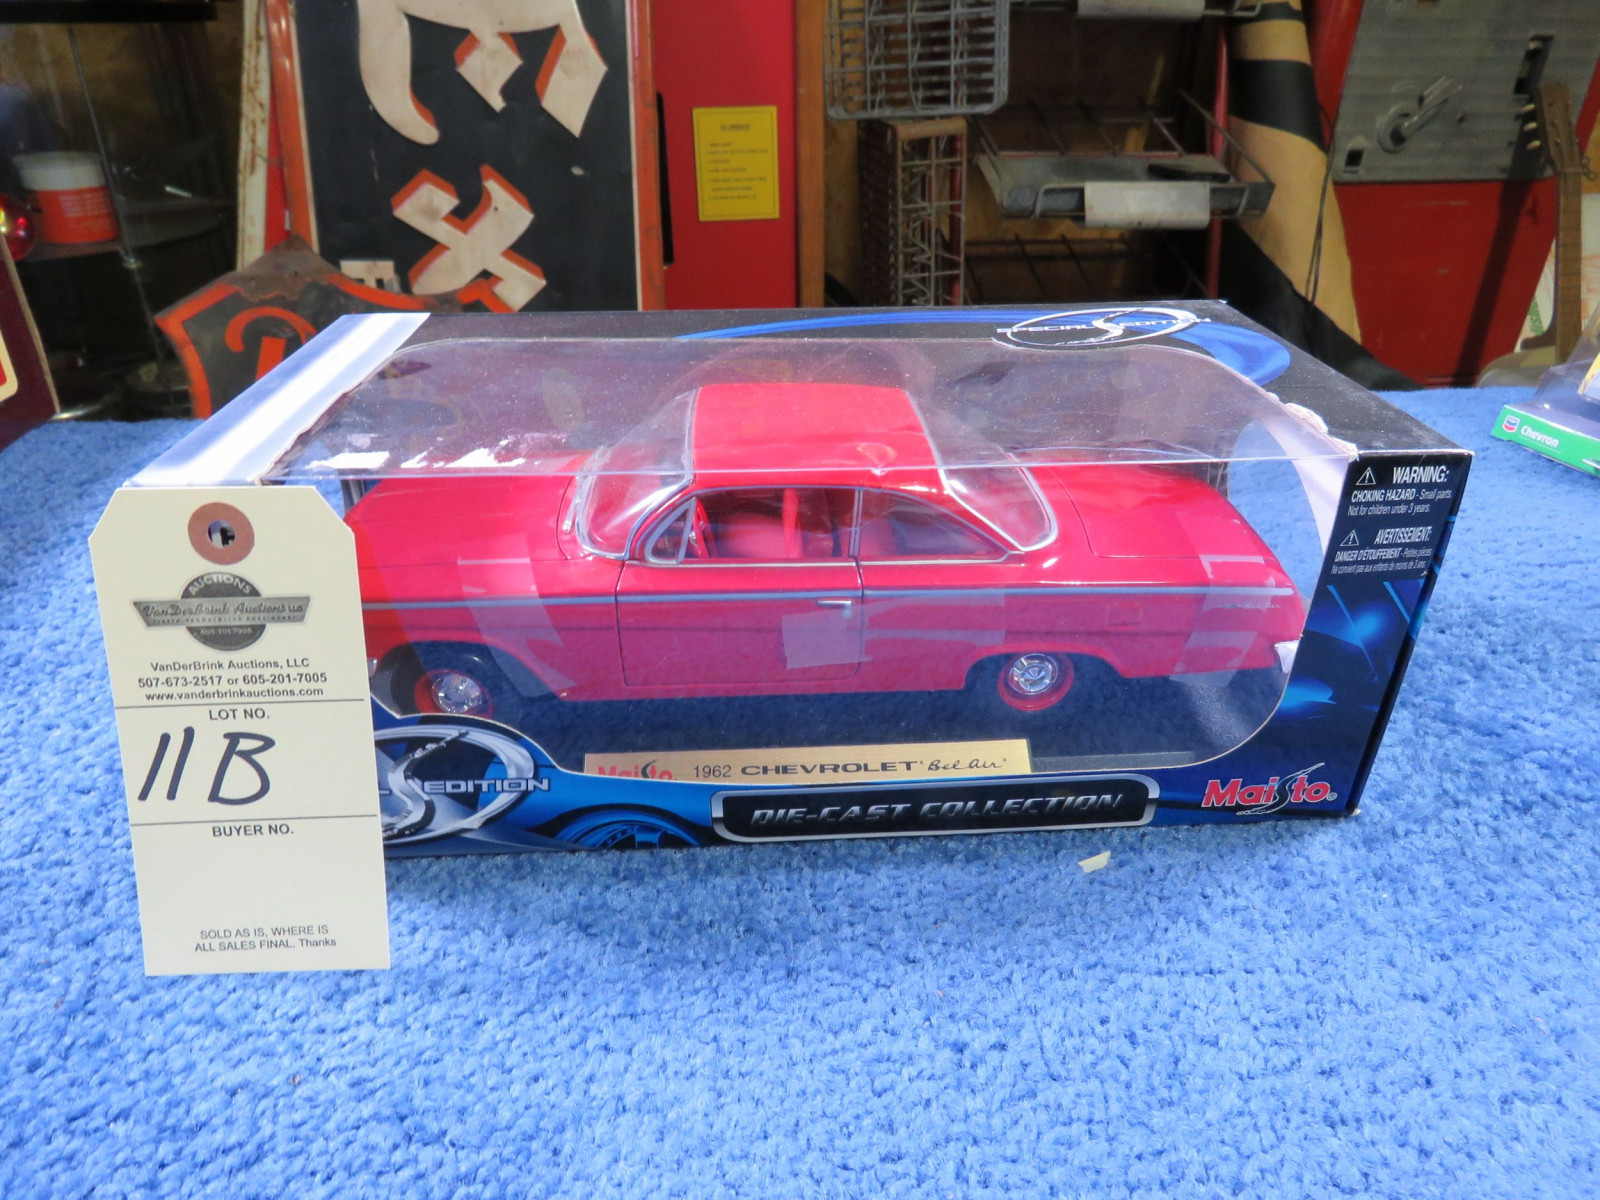 1962 Chevrolet Belair Diecast Toy - Image 1